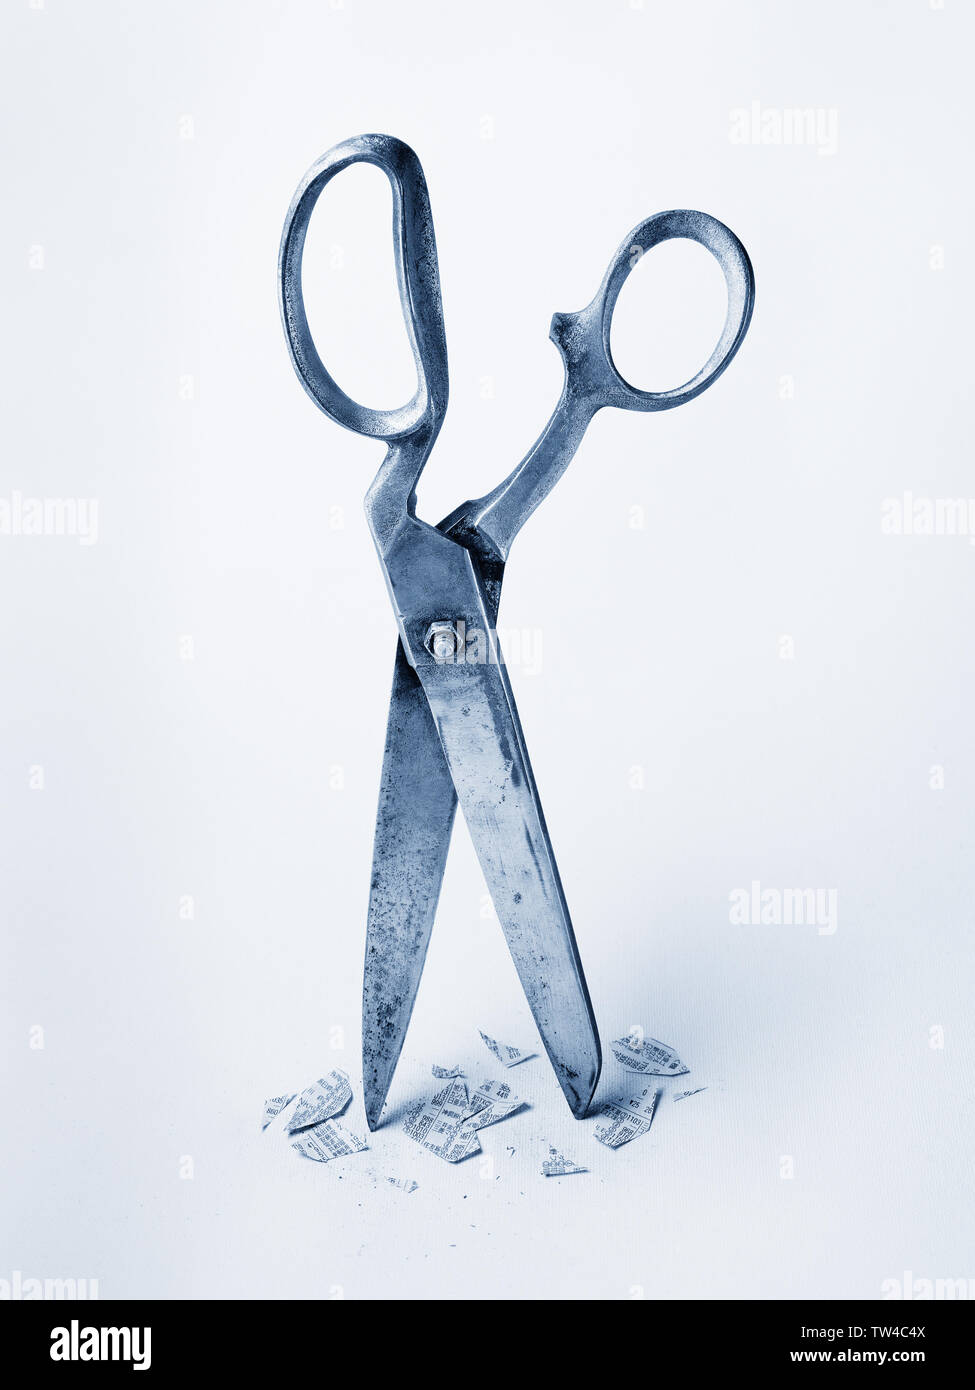 Conceptual image depicting censorship or investments gone wrong with scissors and cut bits of newspaper. - Stock Image